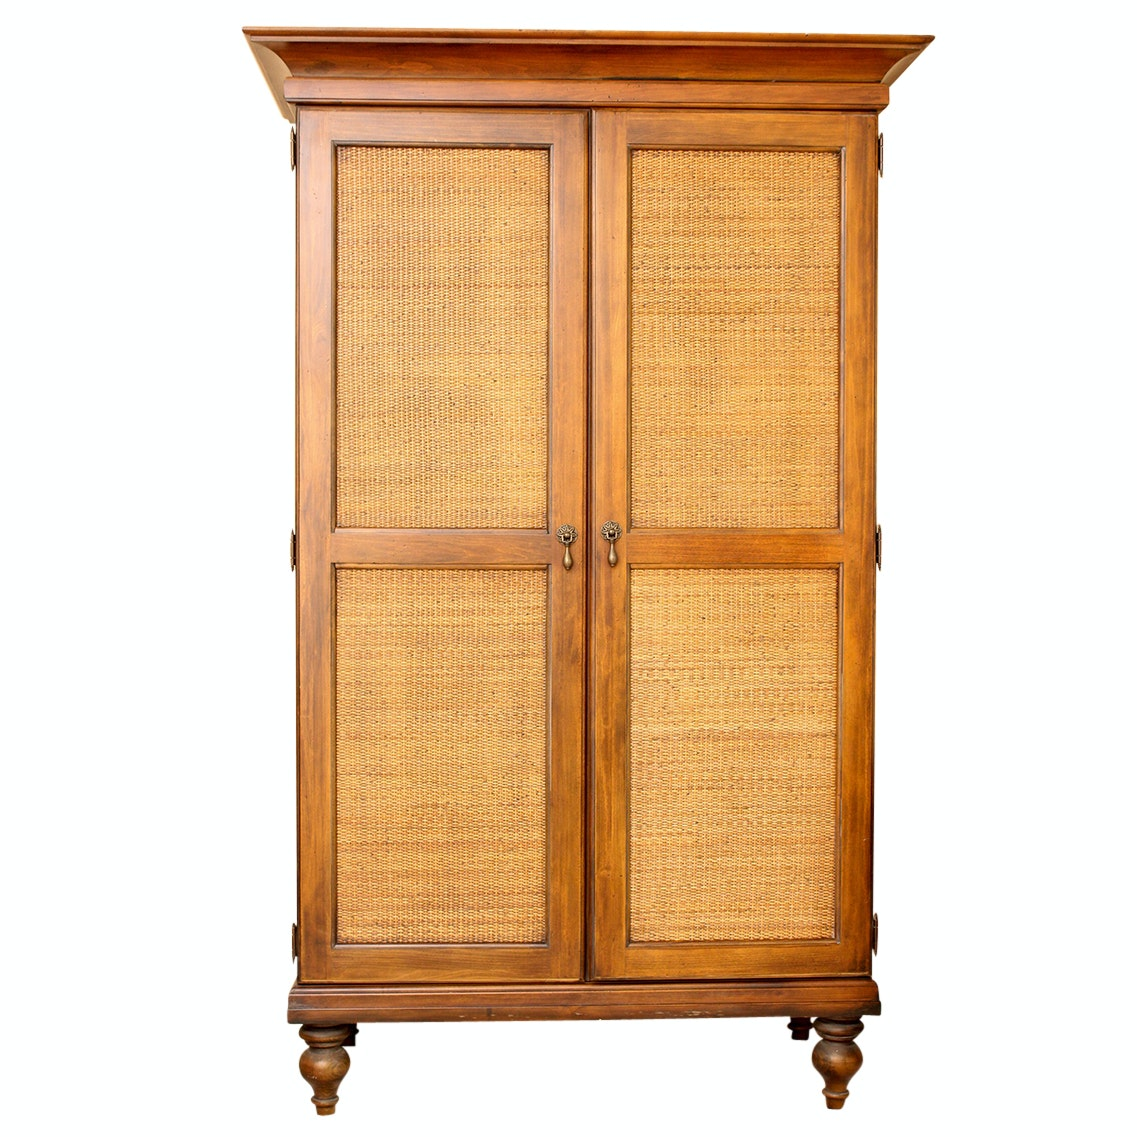 Wood and Woven Rattan Armoire